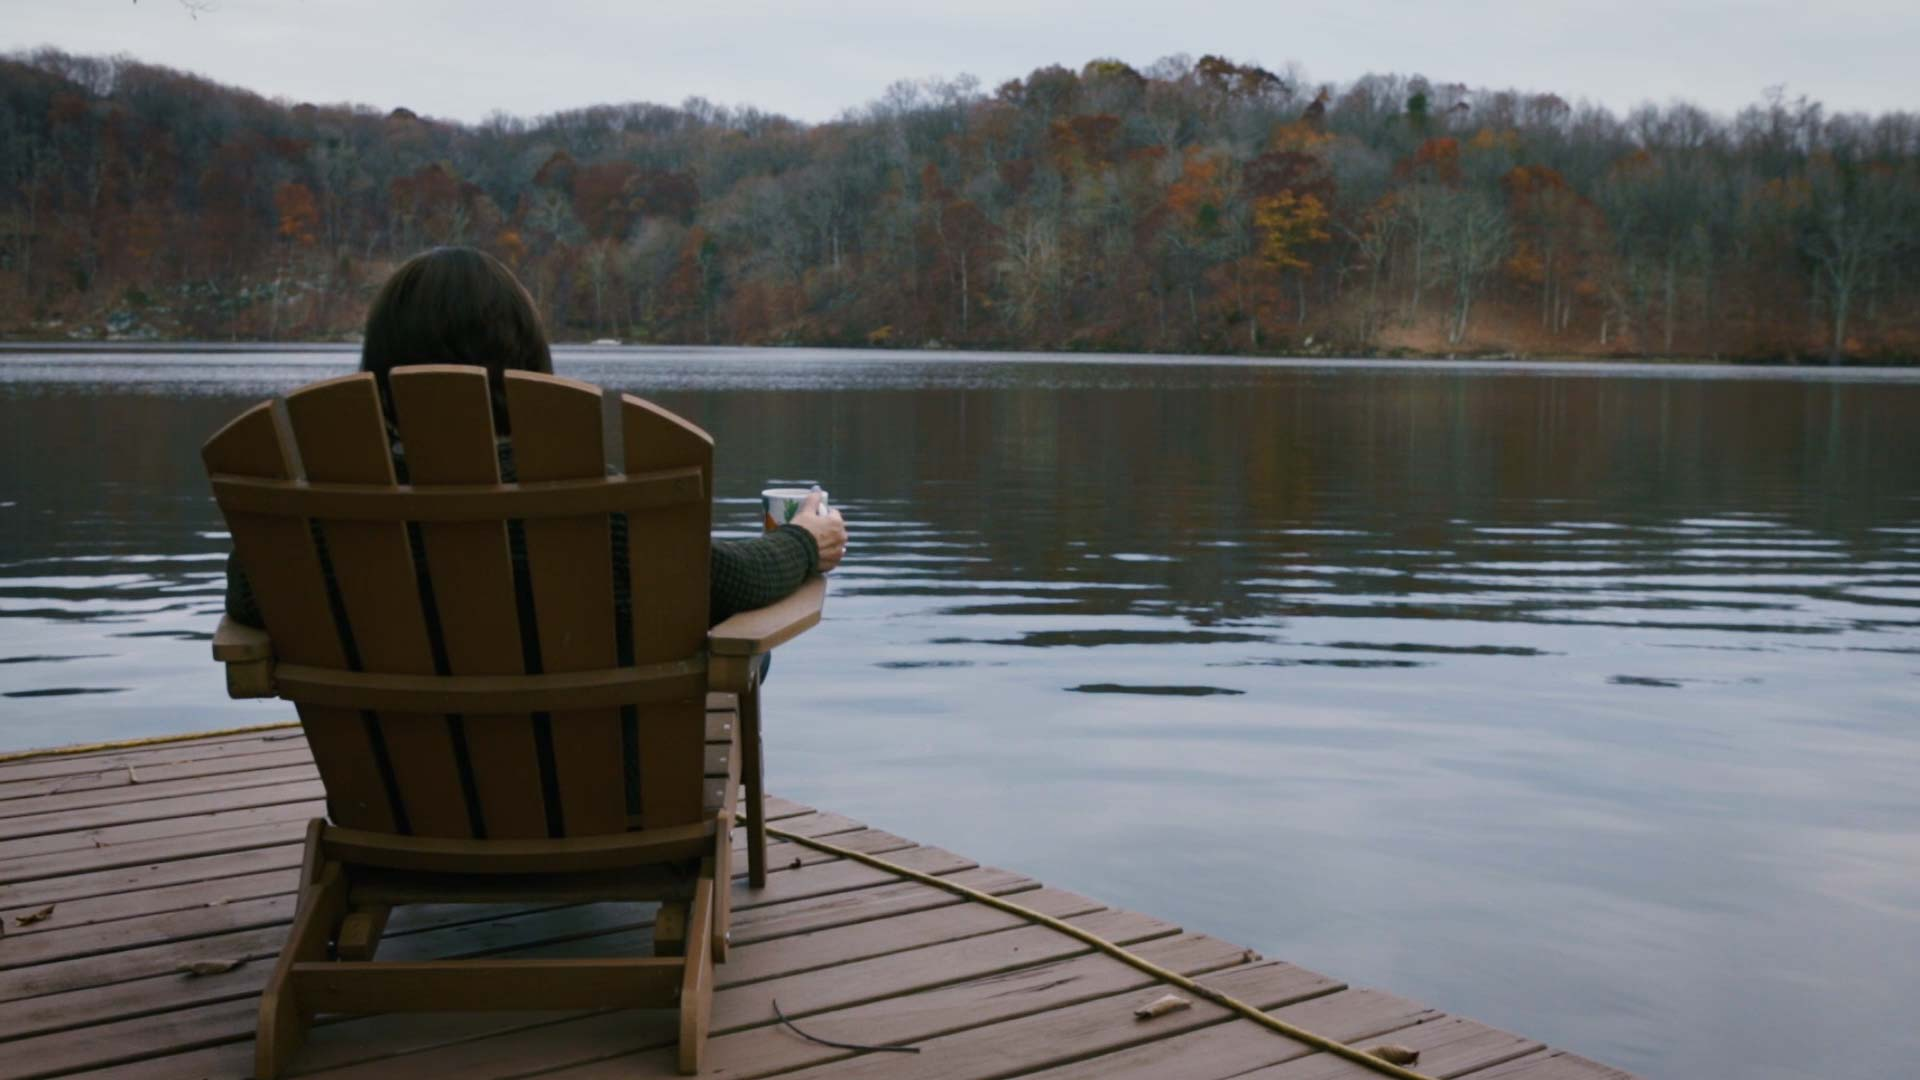 A woman wearing Elimindi apparel sitting out on a lake with a cup in her hand